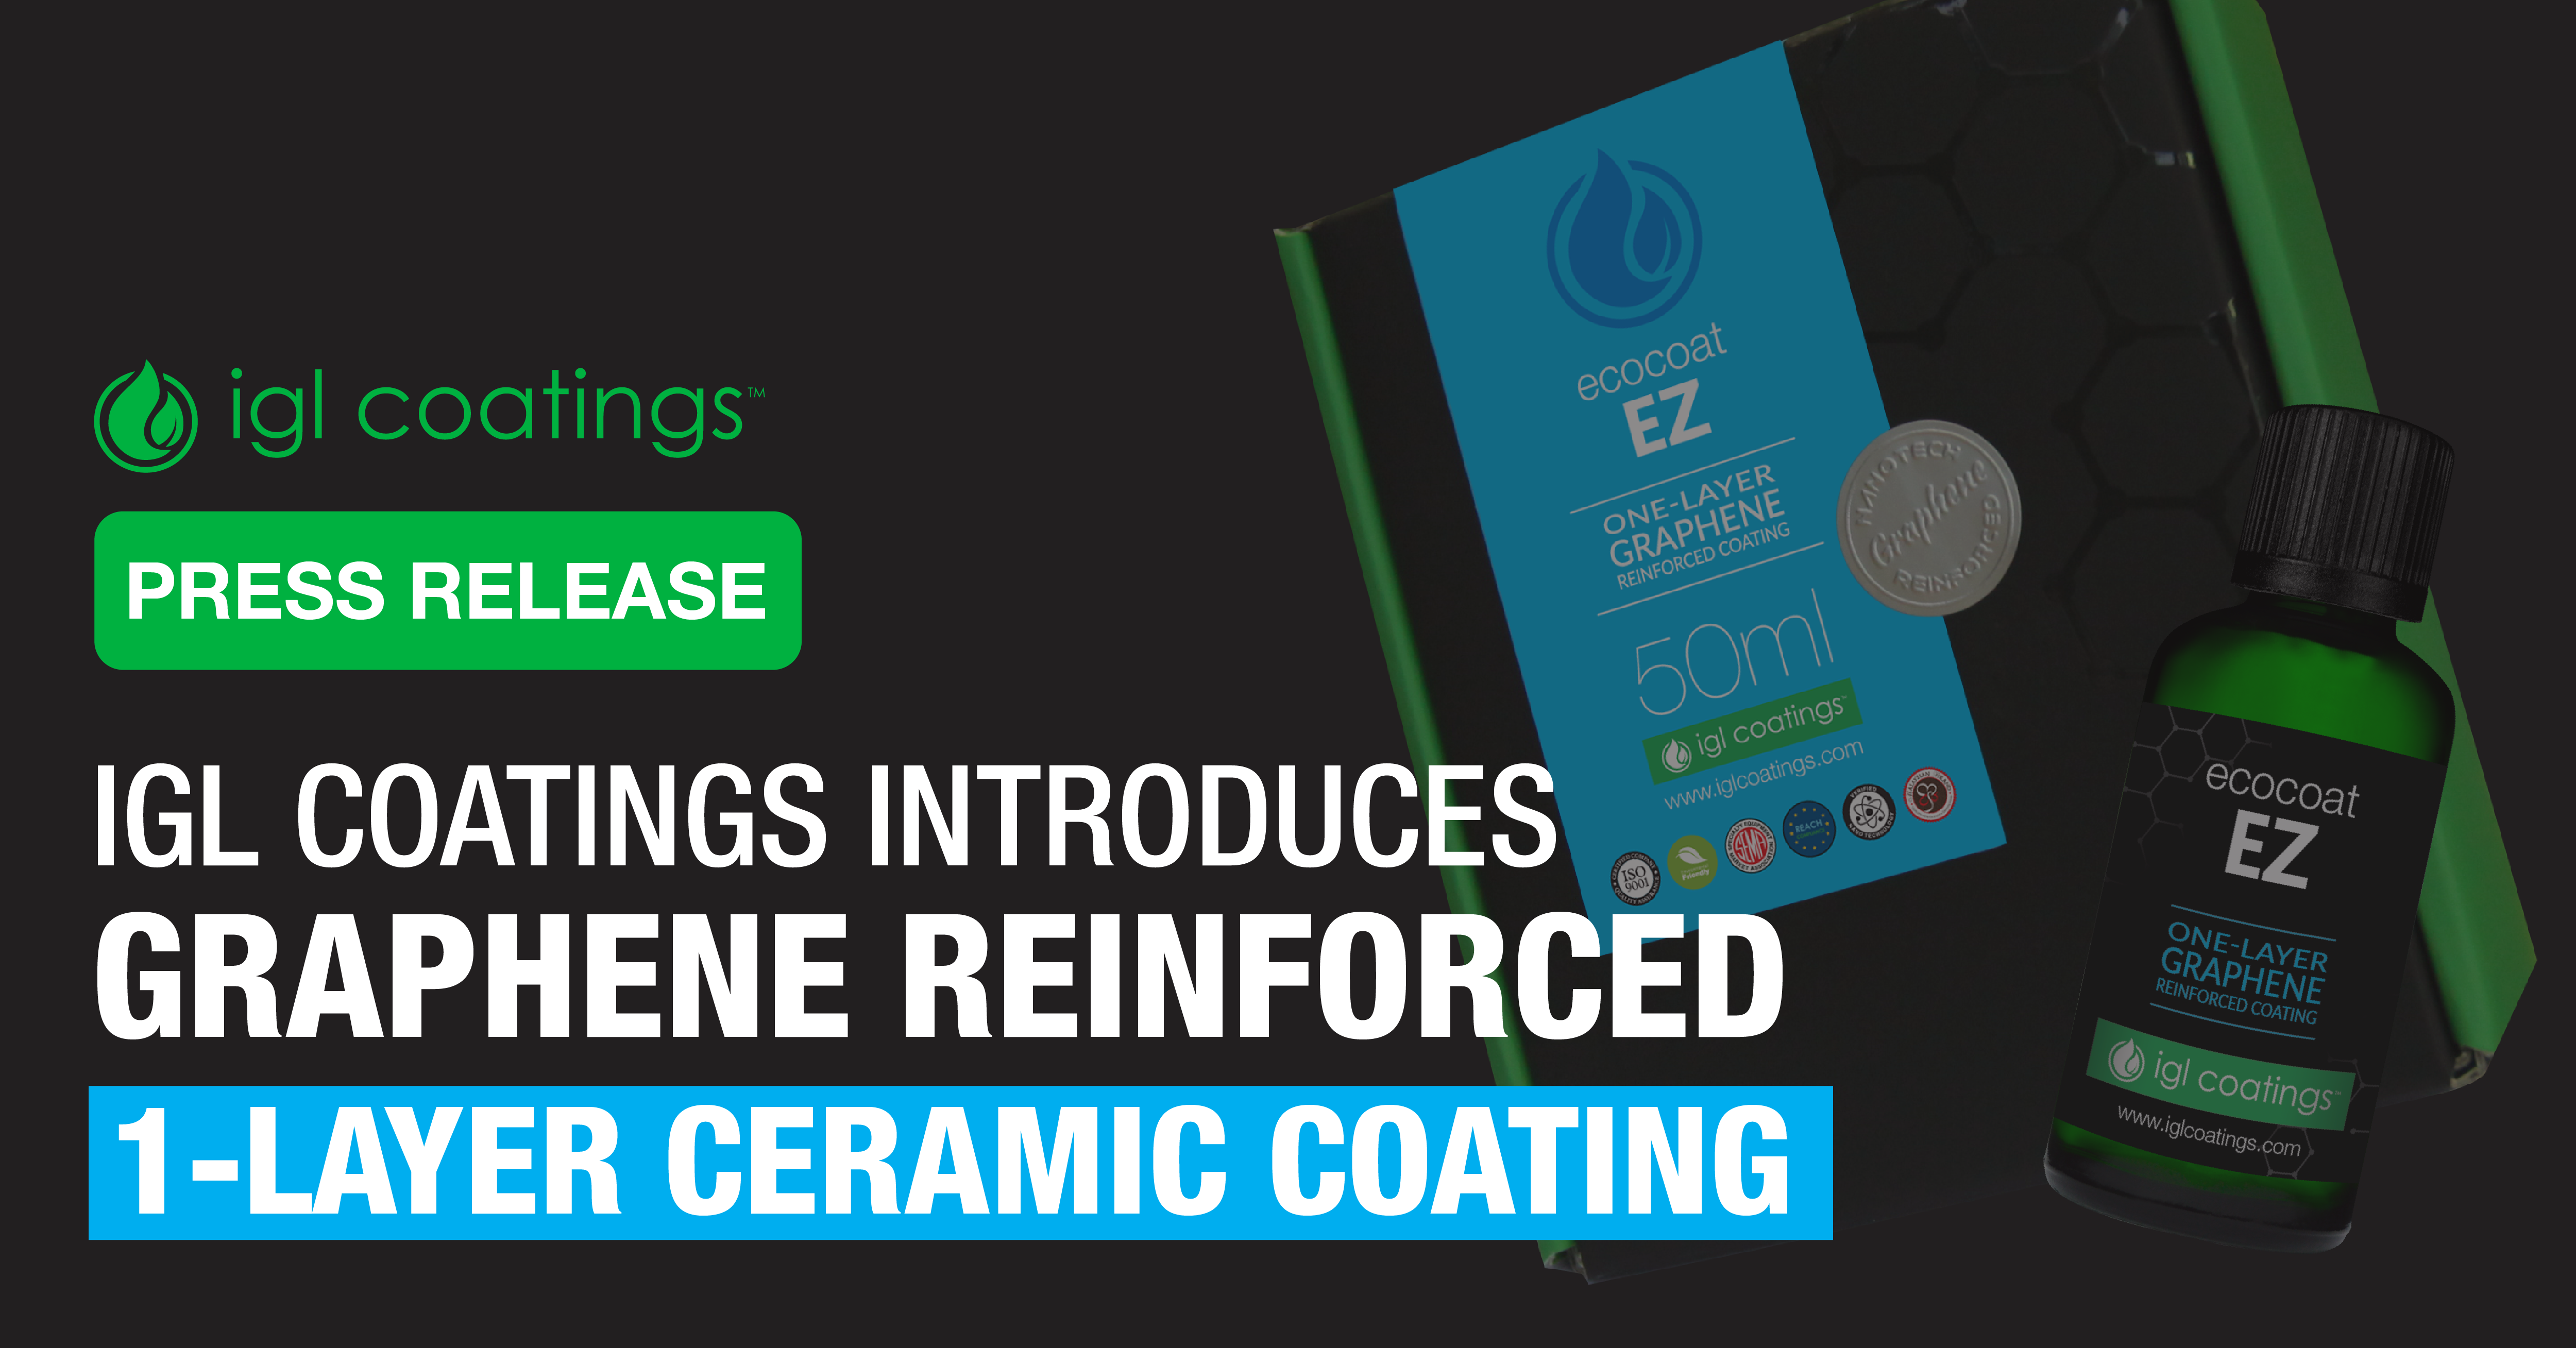 Press Release: Introducing Graphene Reinforced One-Layer Ceramic Coating